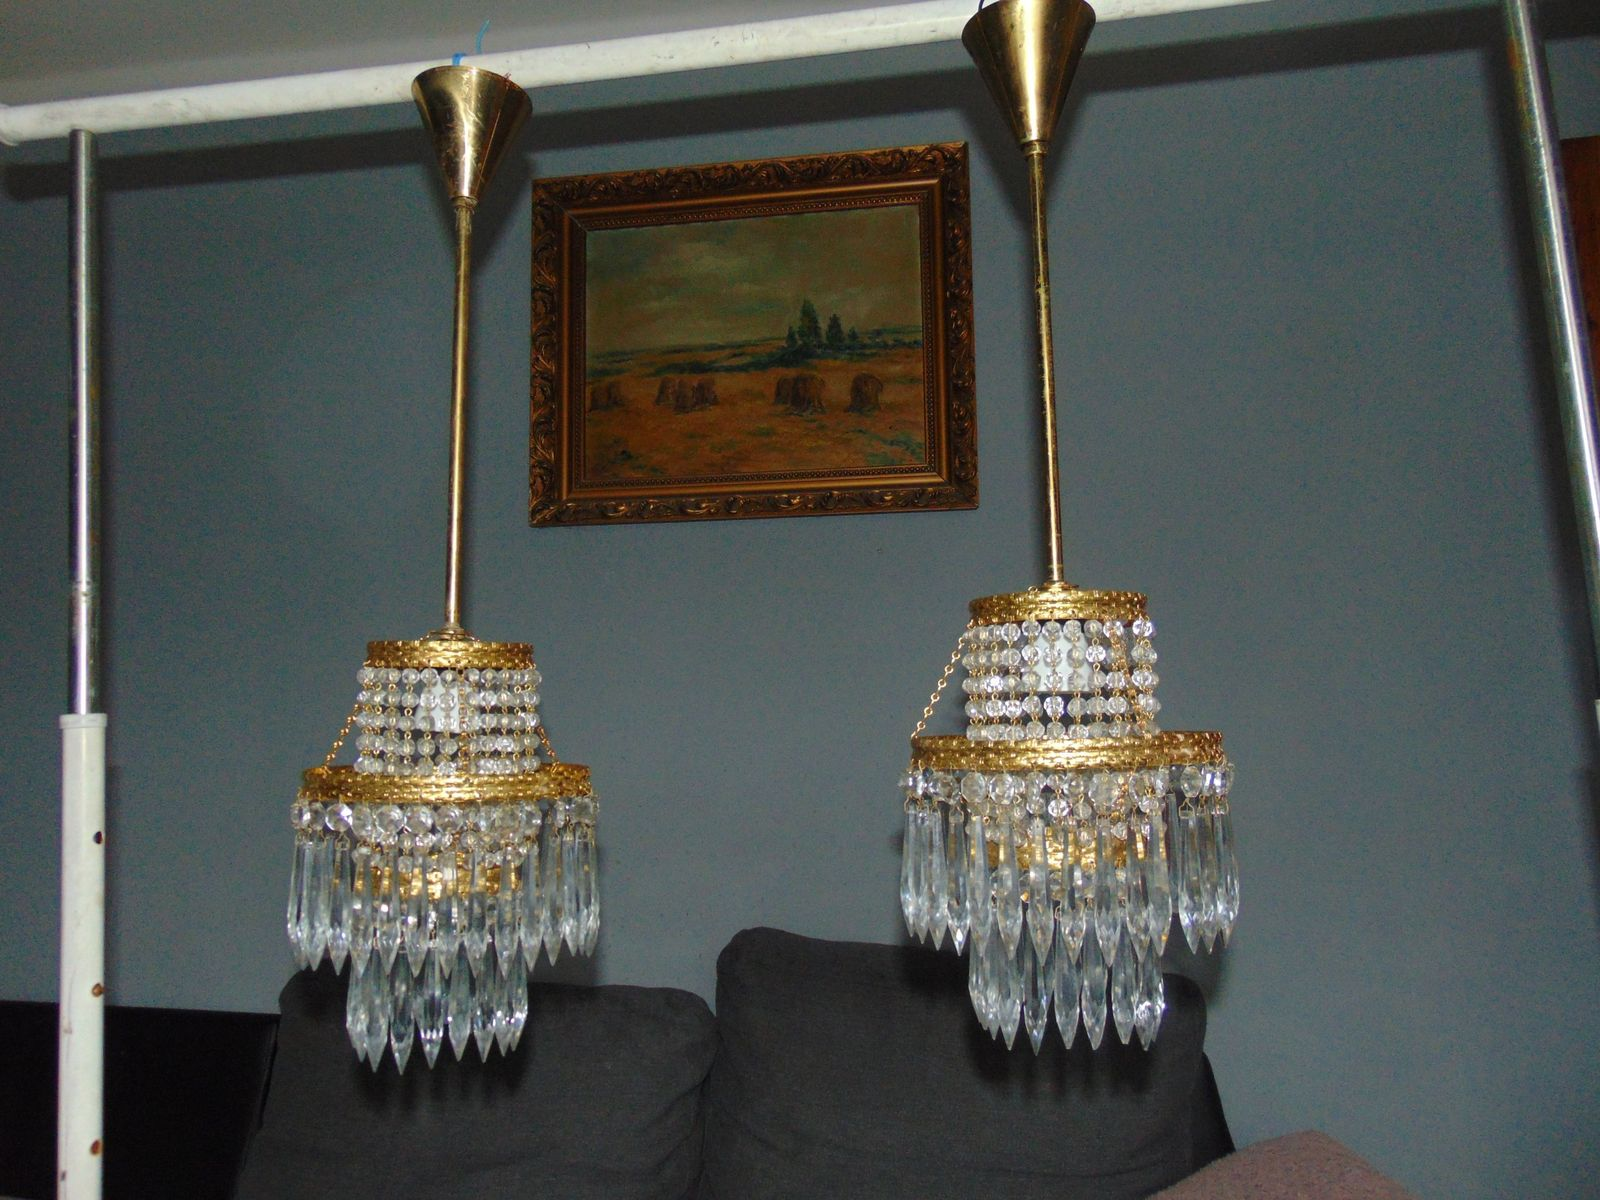 lampe suspension en cristal de jablonec vintage en vente sur pamono. Black Bedroom Furniture Sets. Home Design Ideas